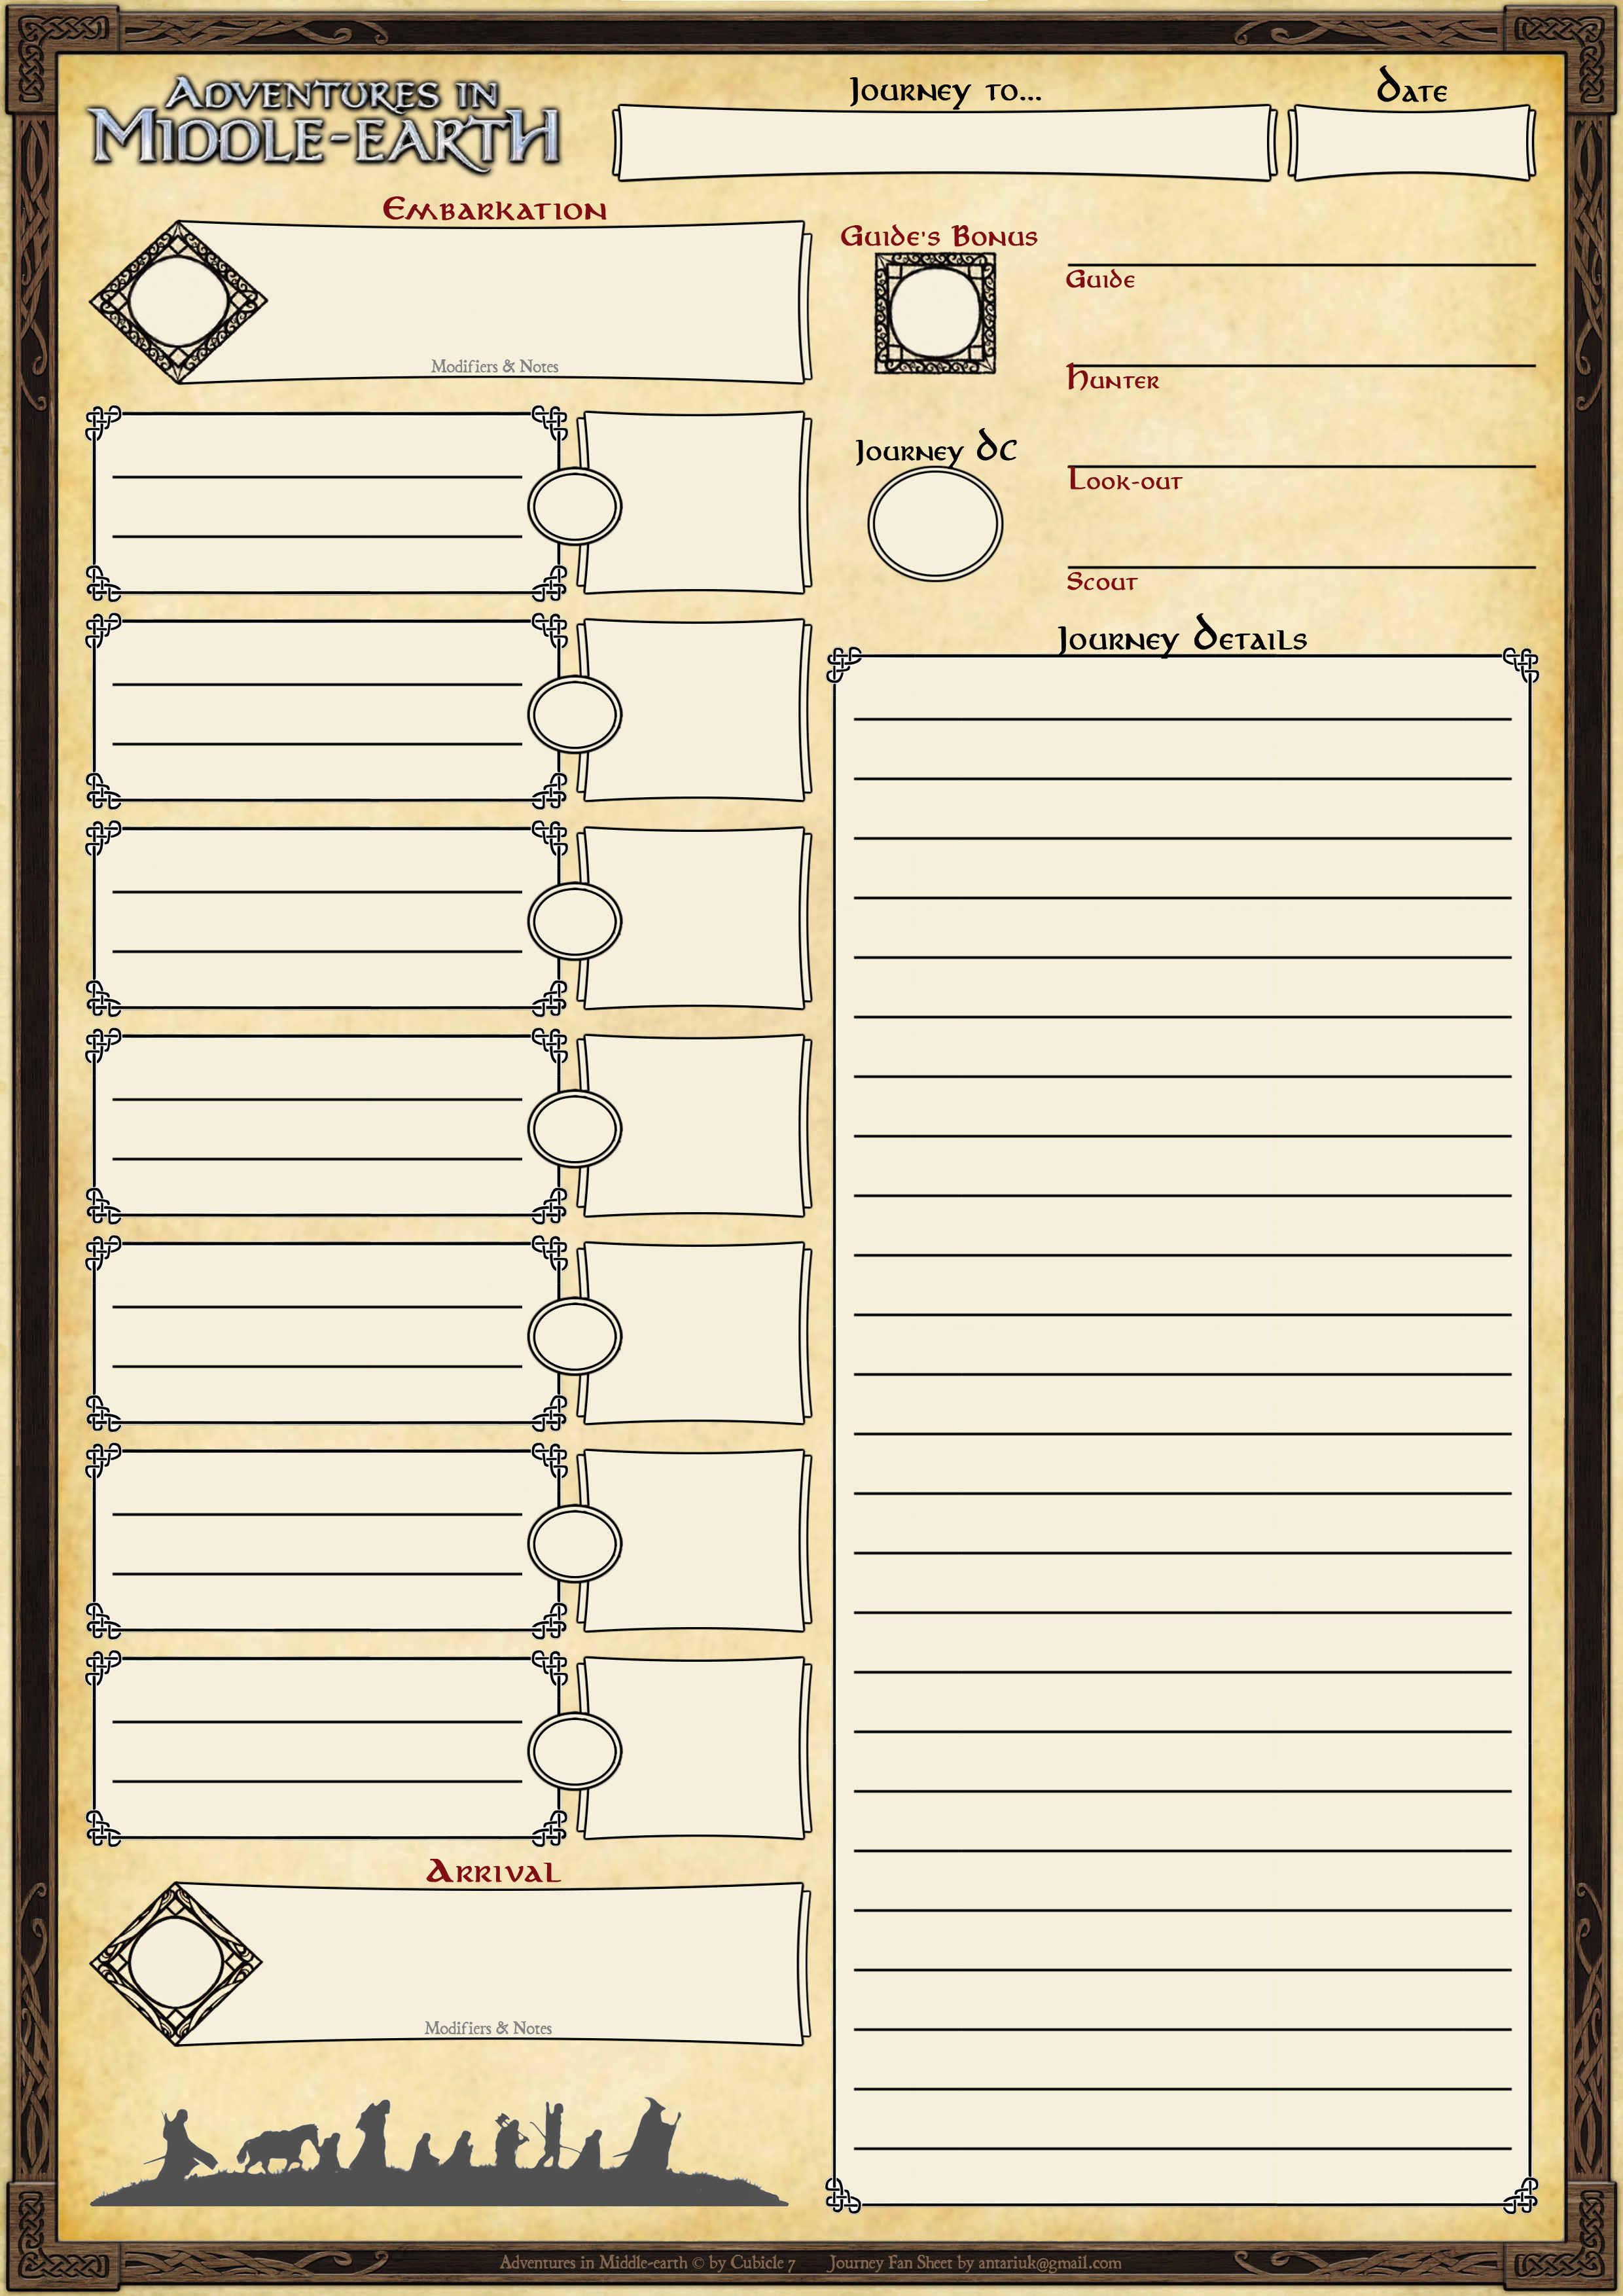 Custom Character Sheets For Adventures In Middle Earth